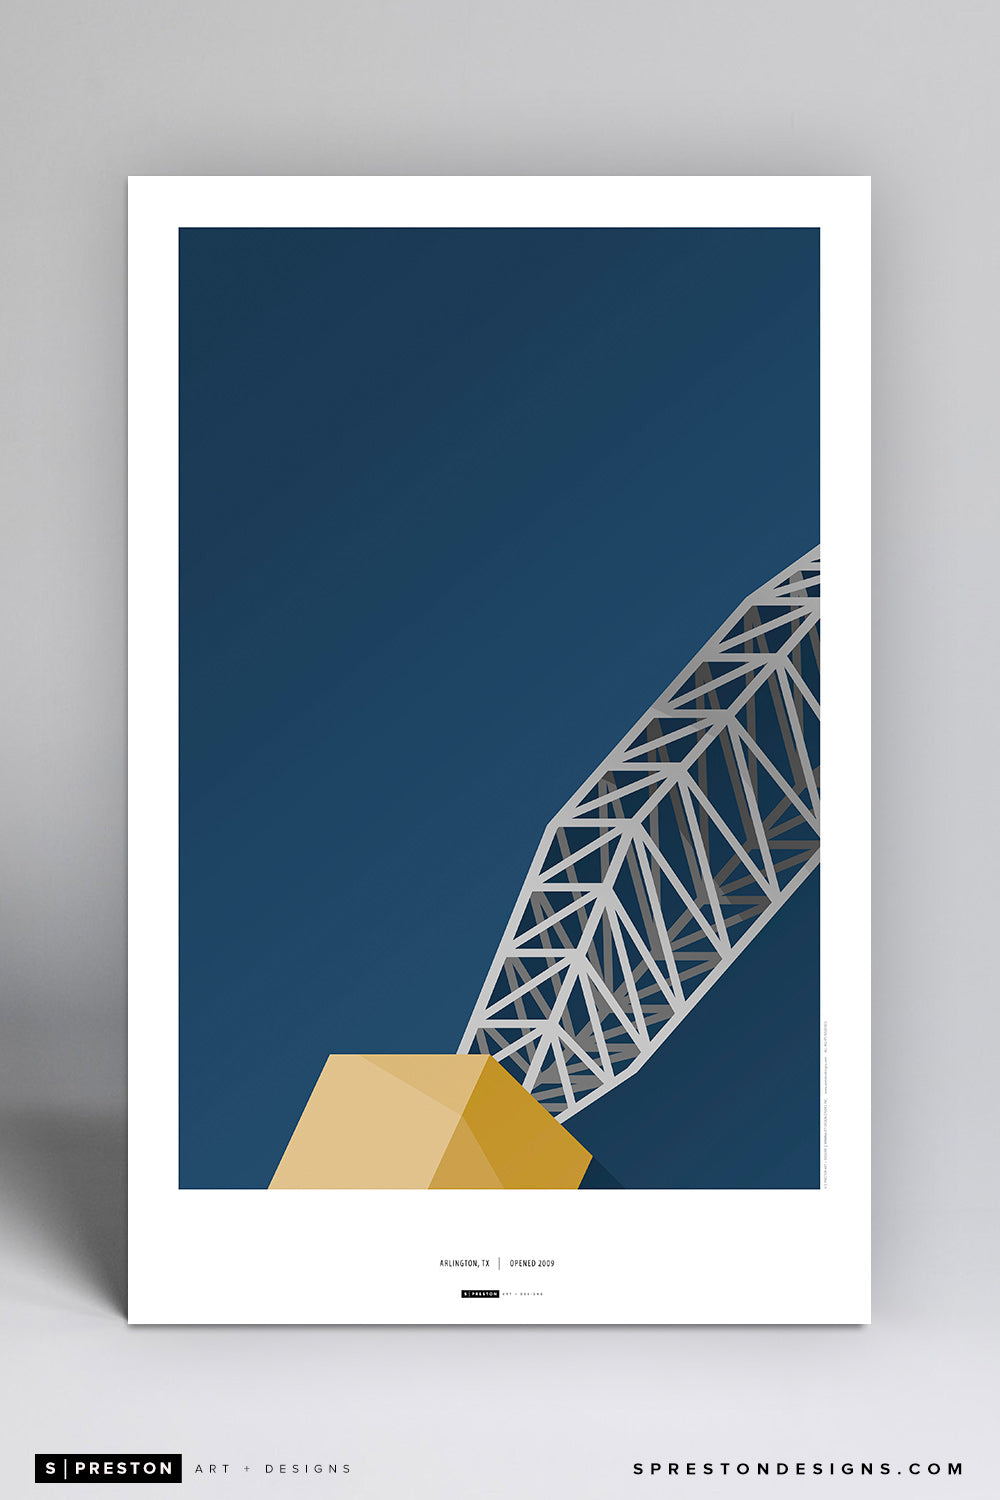 Minimalist AT&T Stadium (anchor) Poster Print Dallas Cowboys - S Preston